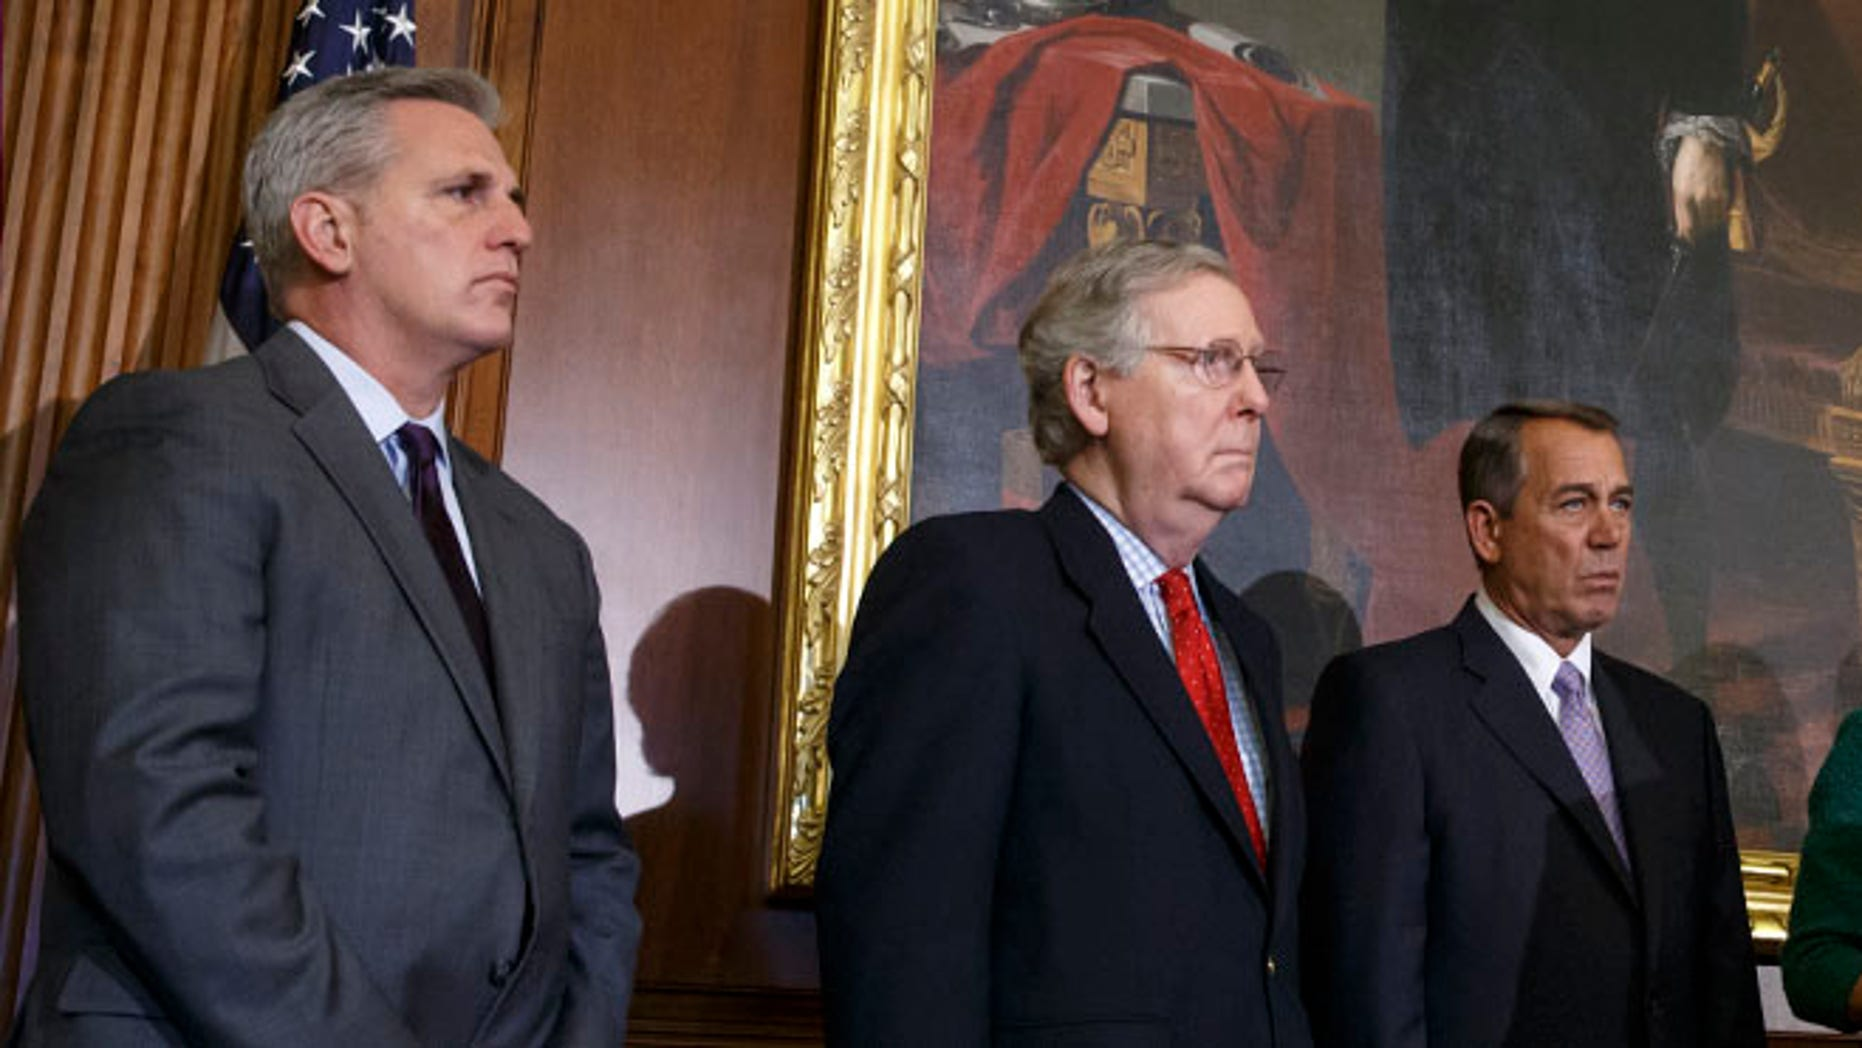 FILE: Feb. 13, 2015: From left House Majority Leader Kevin McCarthy, Senate Majority Leader Mitch McConnell and House Speaker John Boehner on Capitol Hill in Washington, D.C.